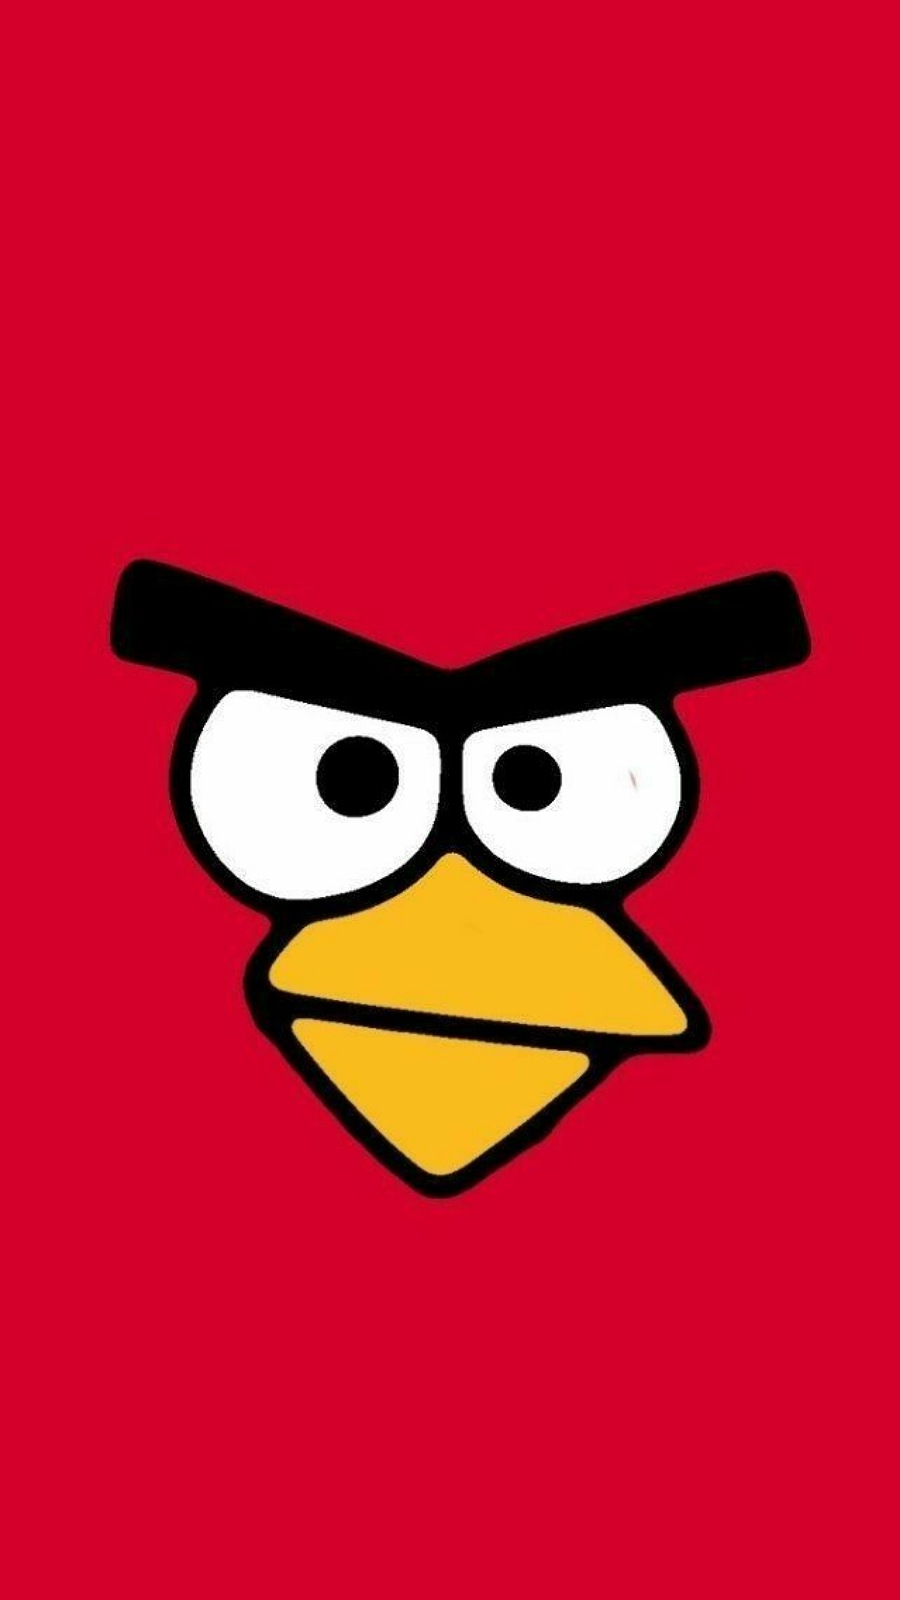 Angry Bird Wallpapers for Phone Free Download – Best Wallapers